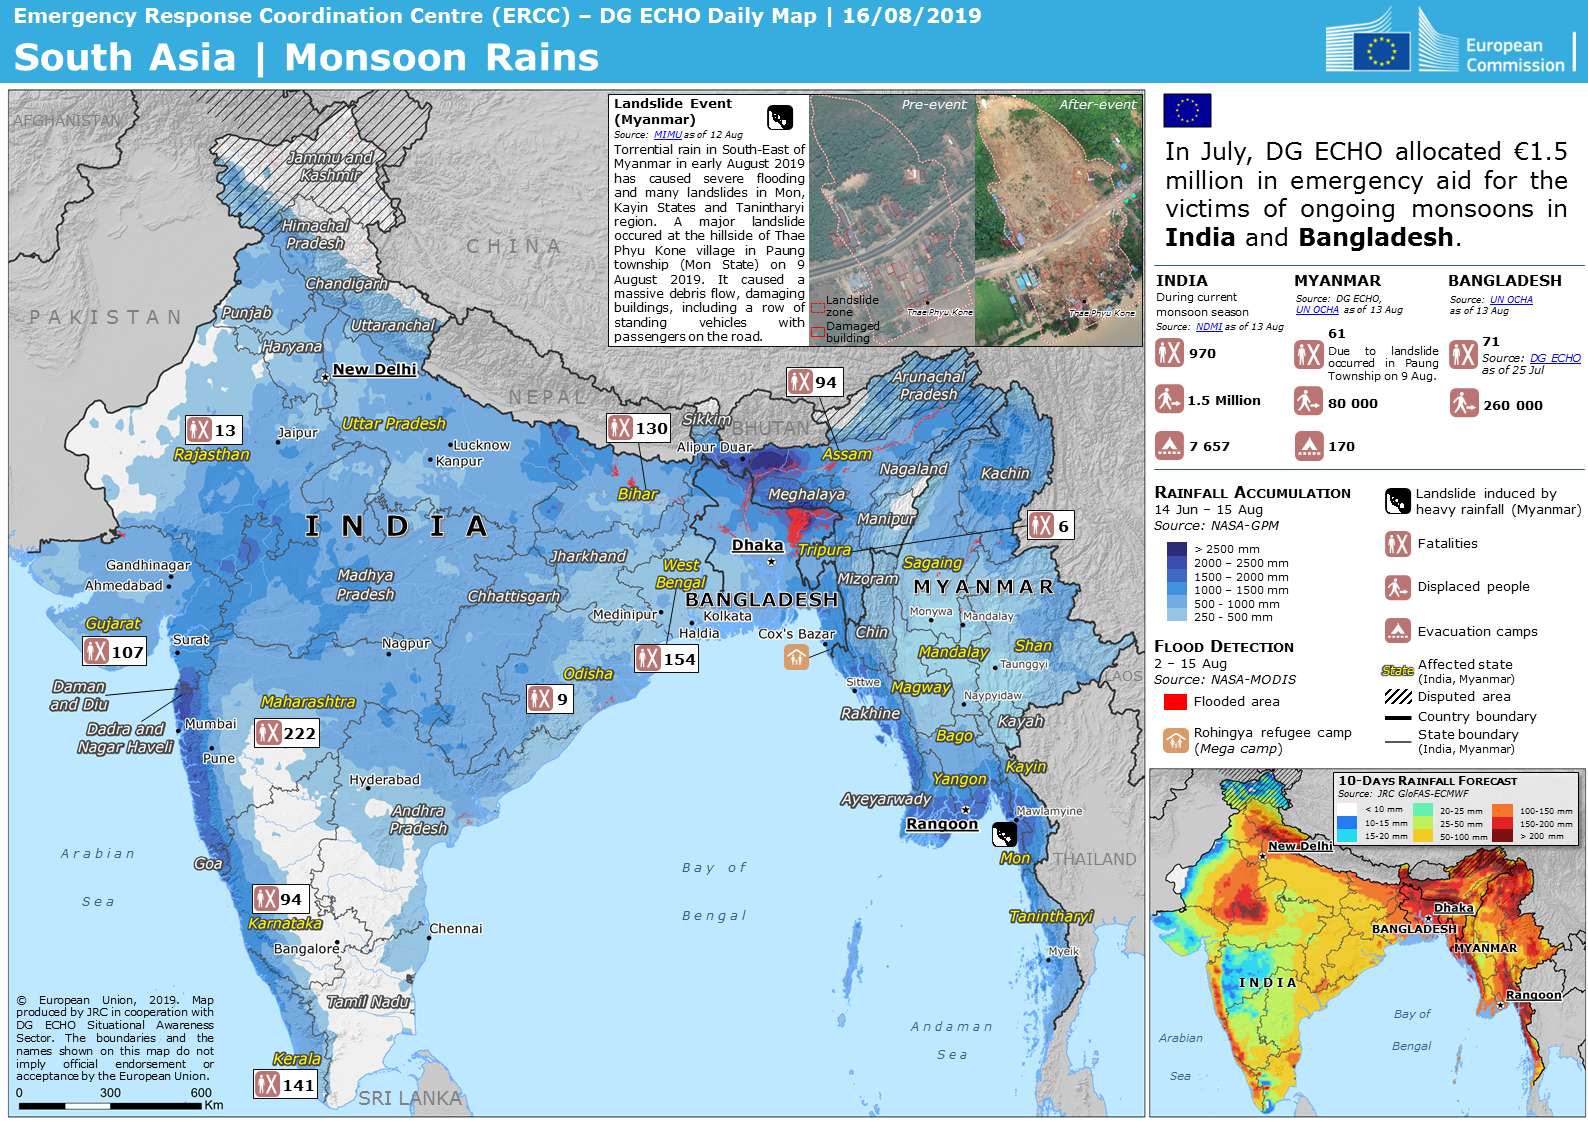 ECDM_20190816_Monsoon_v2.png